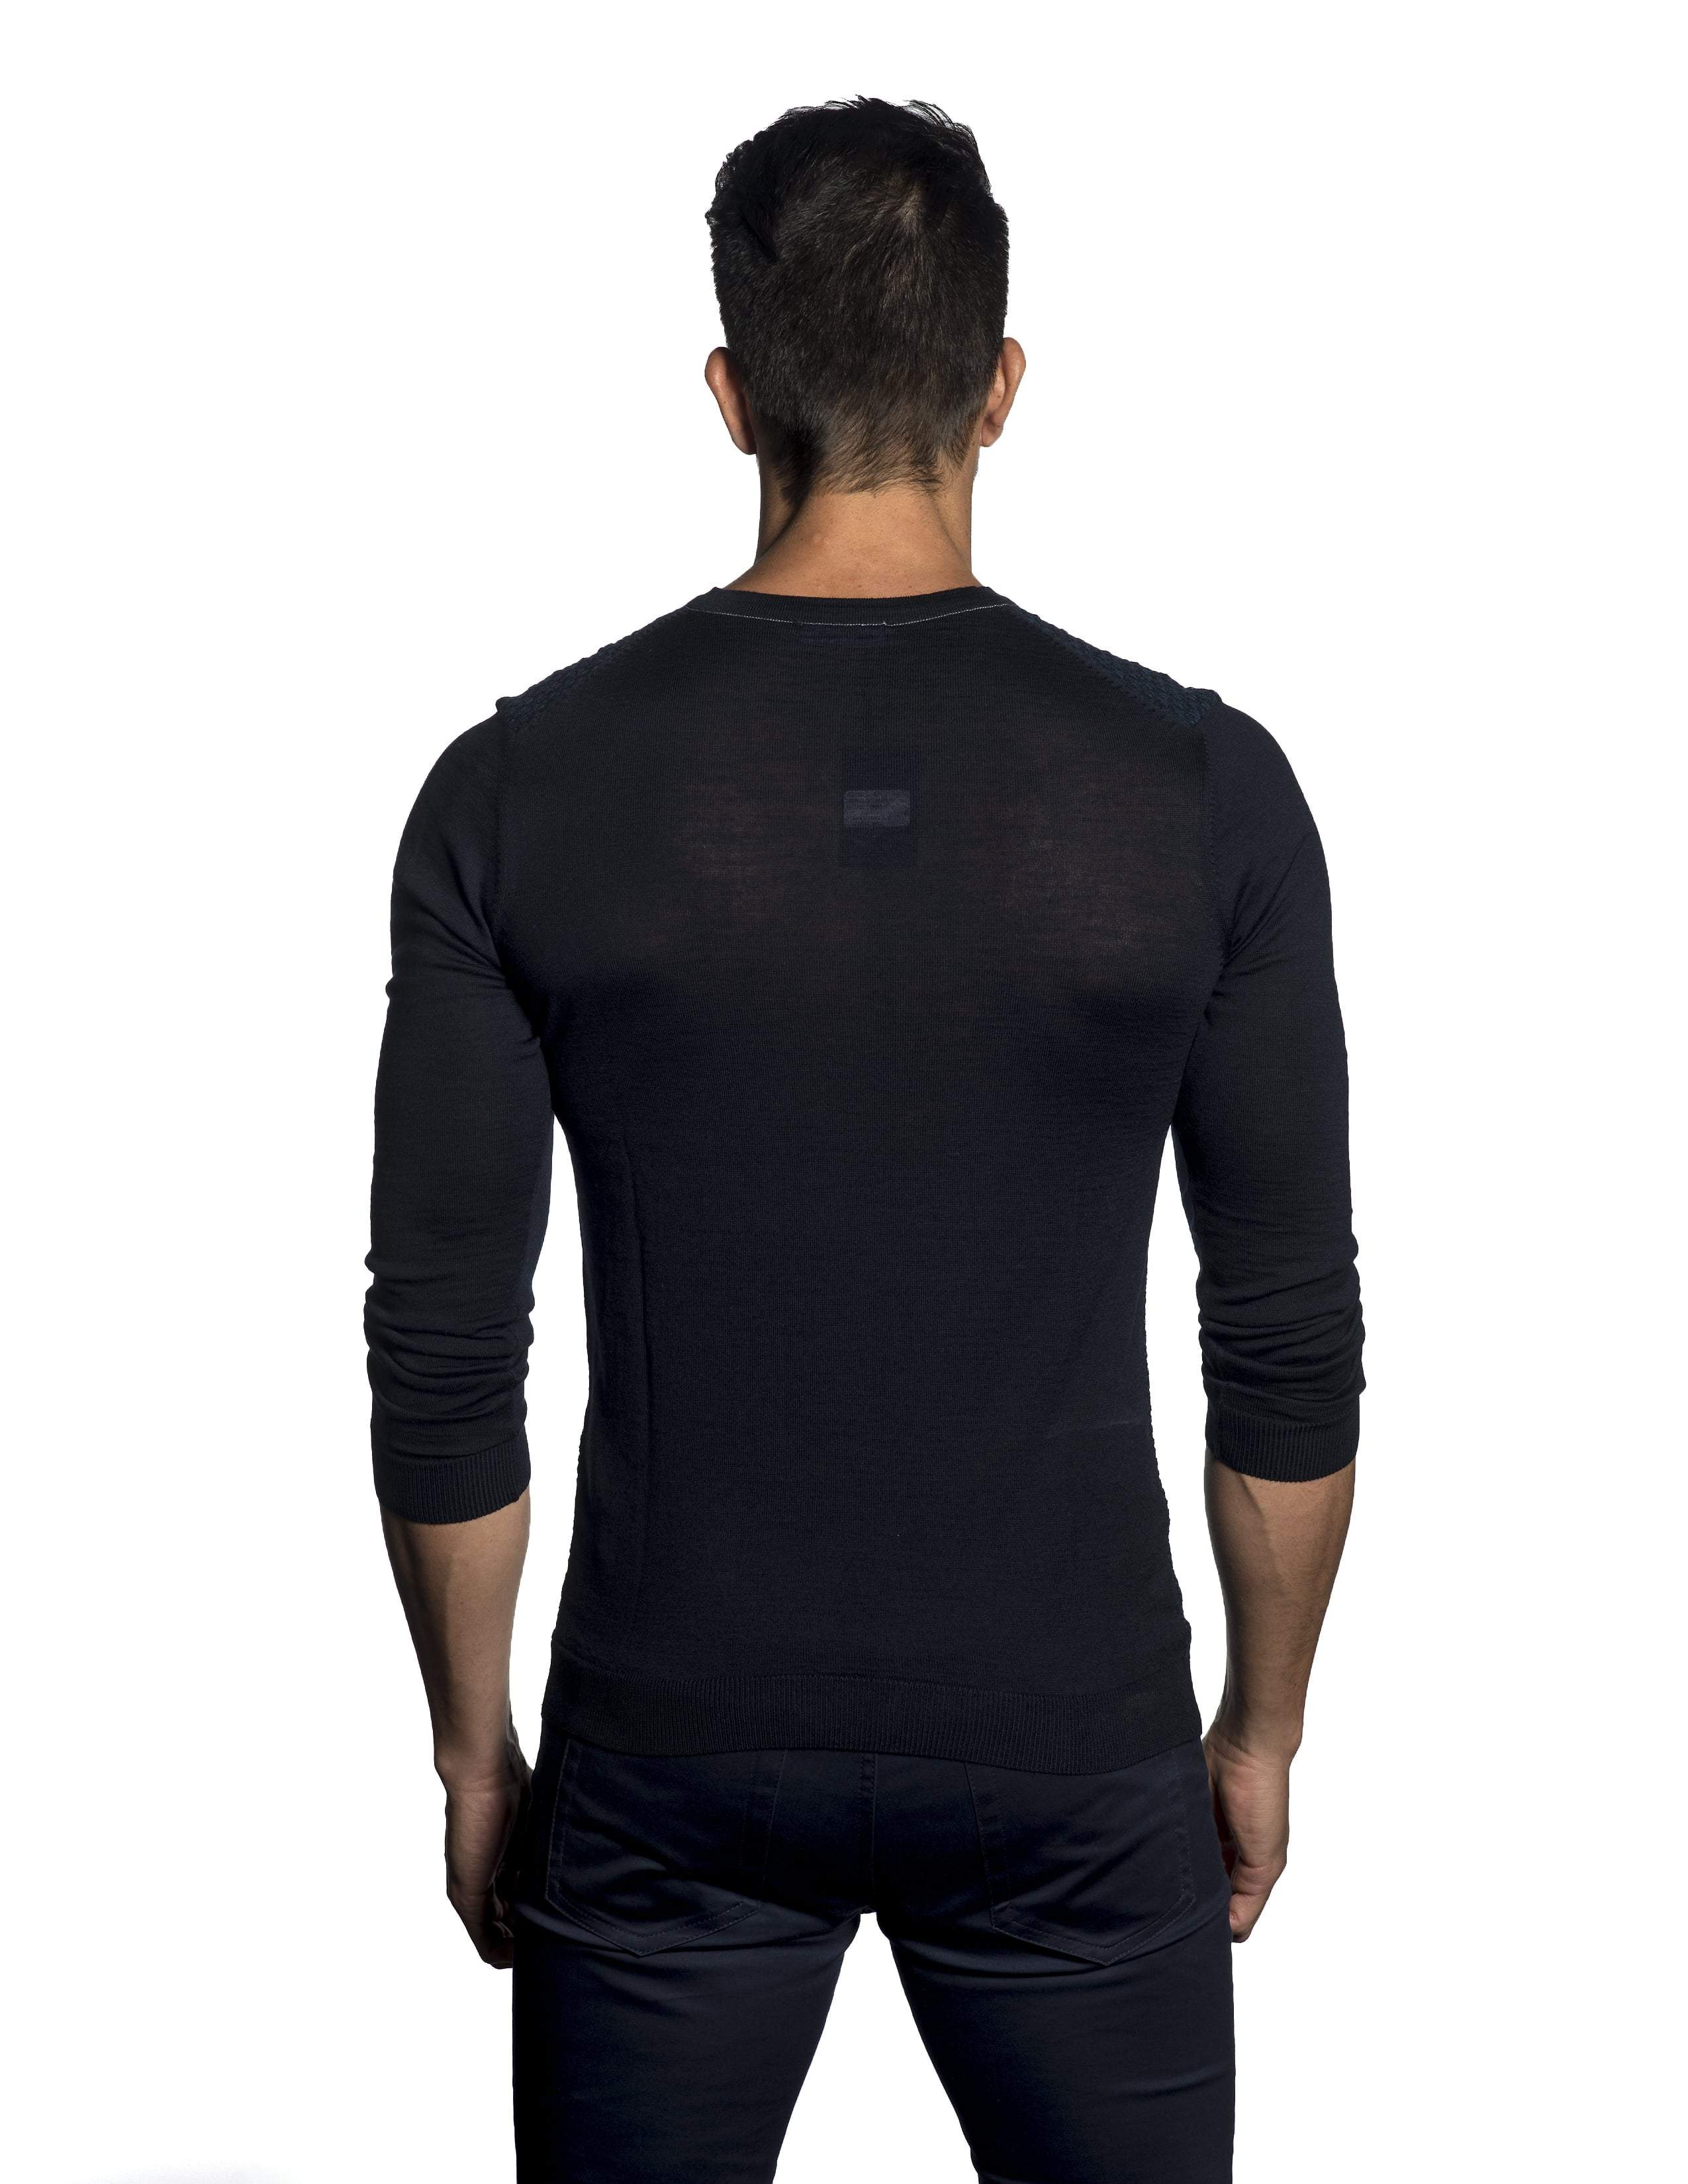 Navy Sweater for men Back JL-04 from Jared Lang